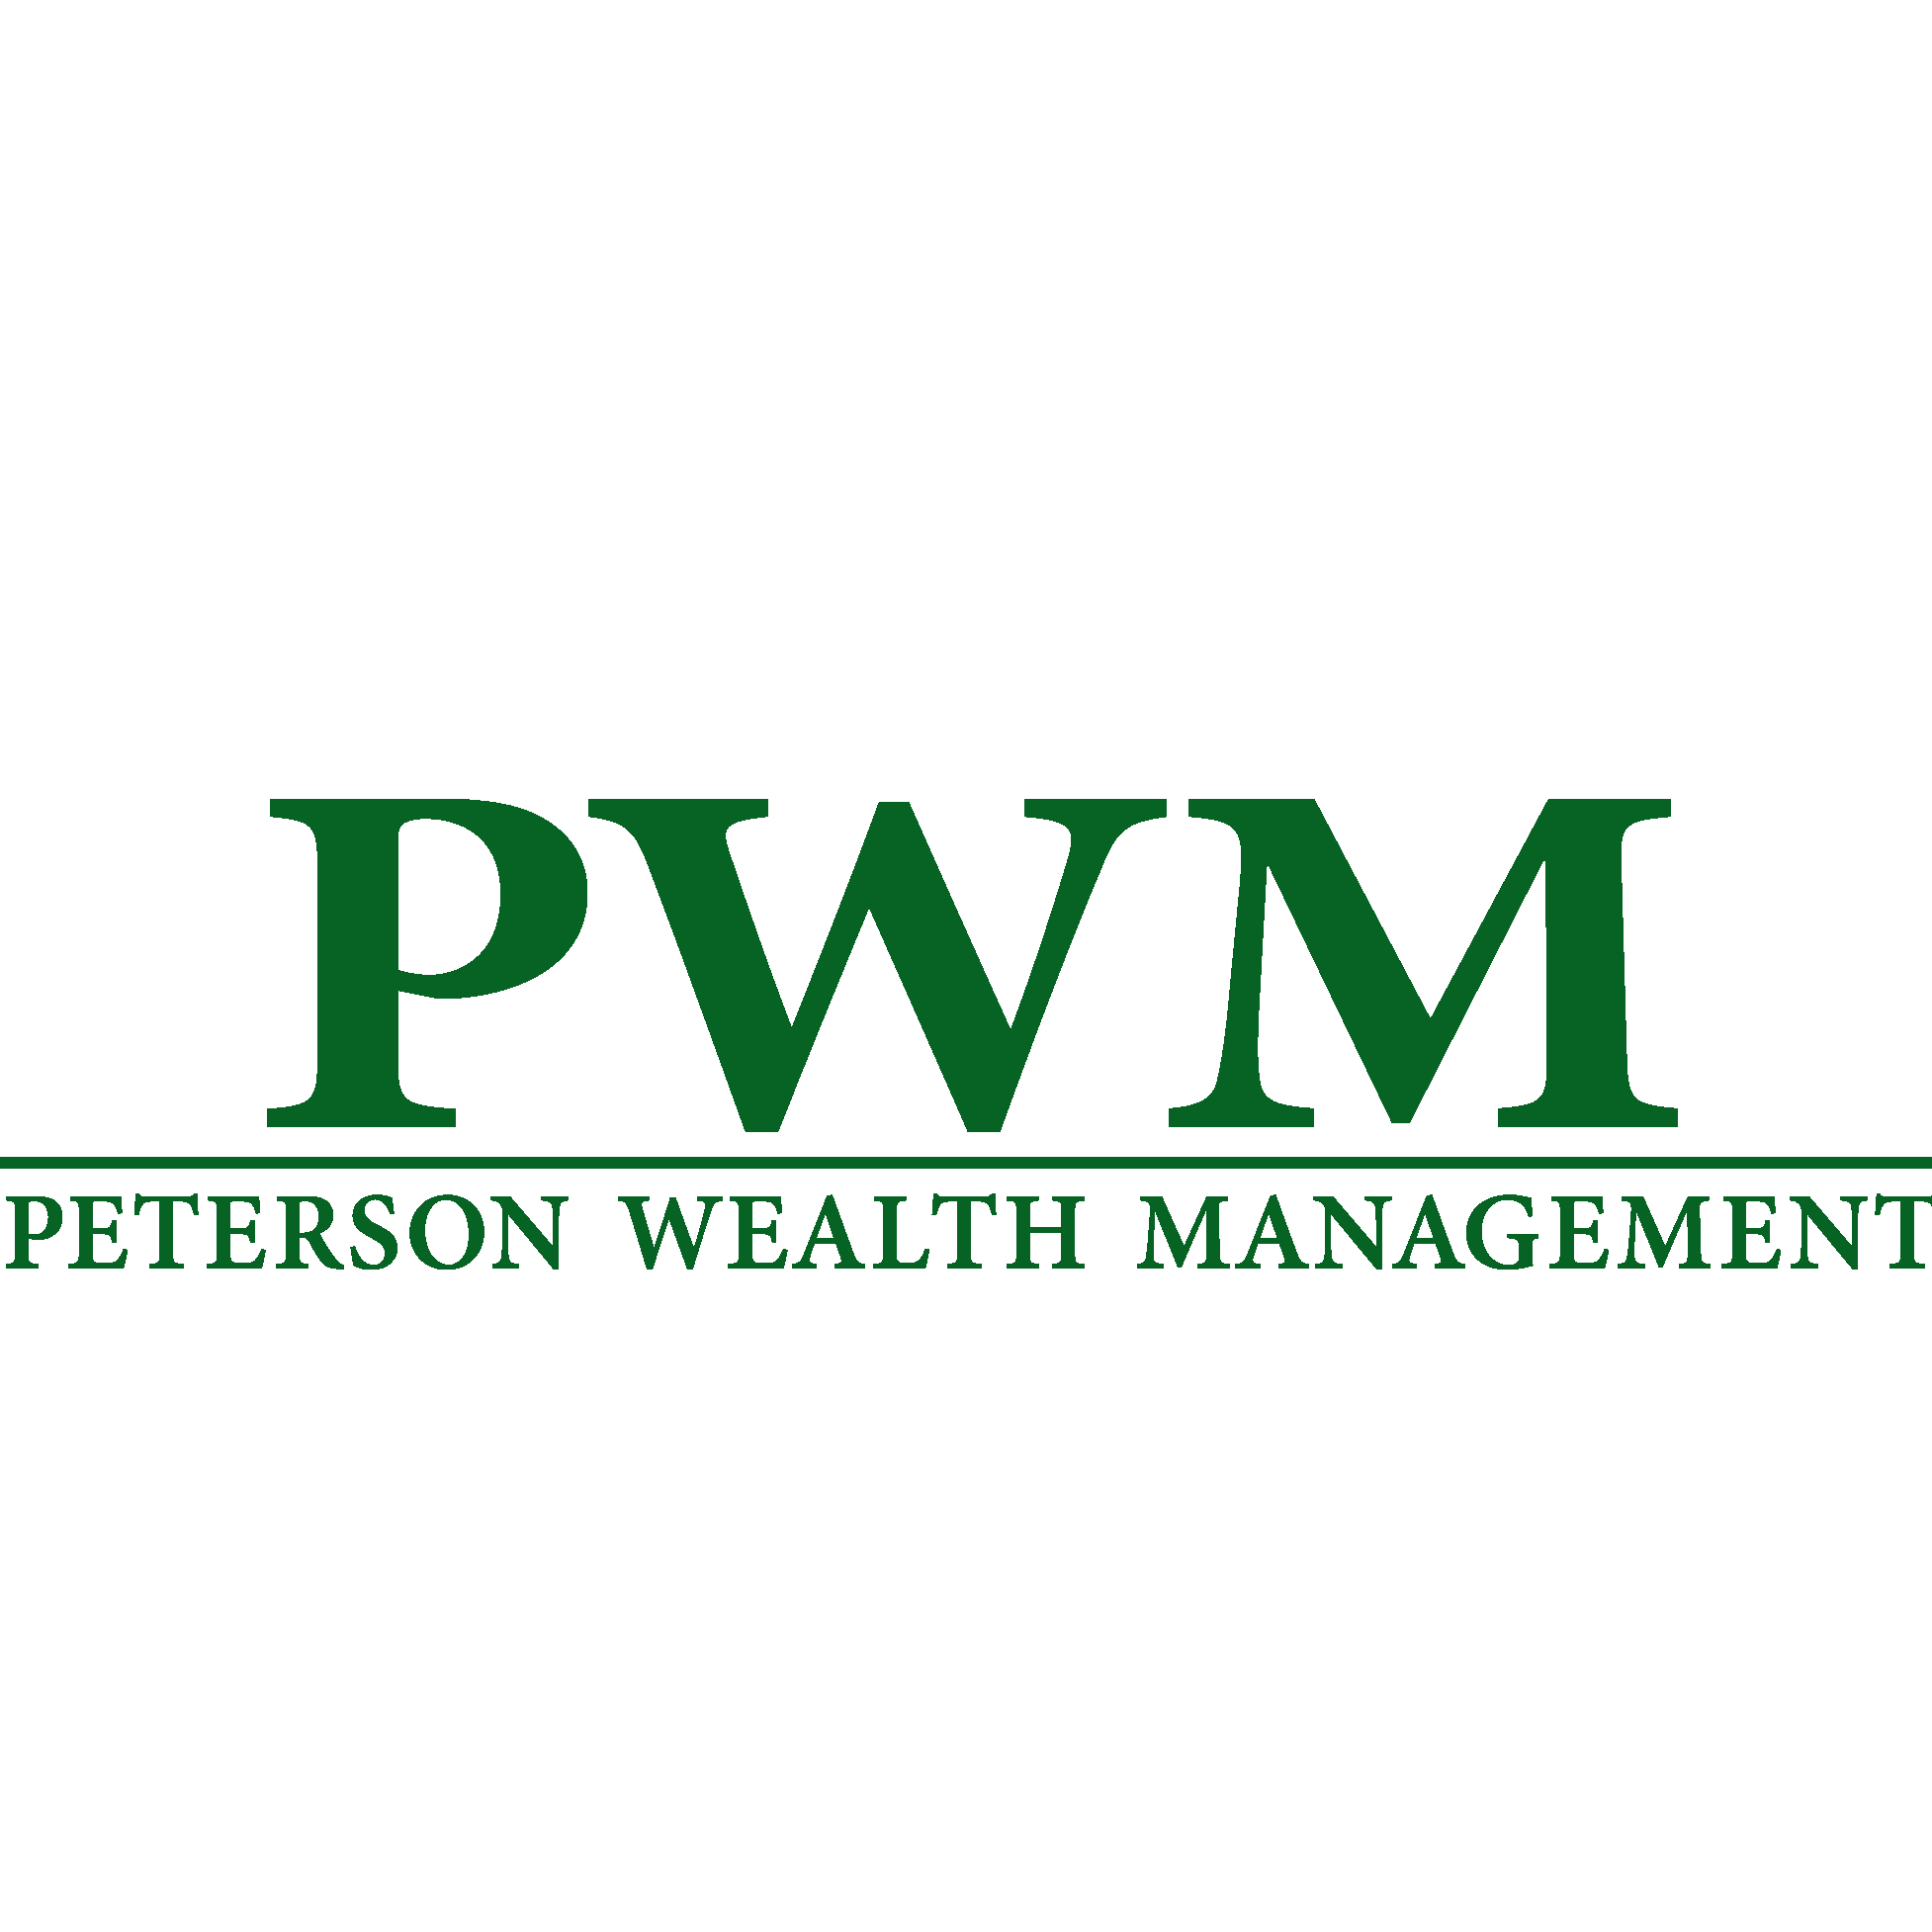 Peterson Wealth Management | Financial Advisor in Sparks,Nevada